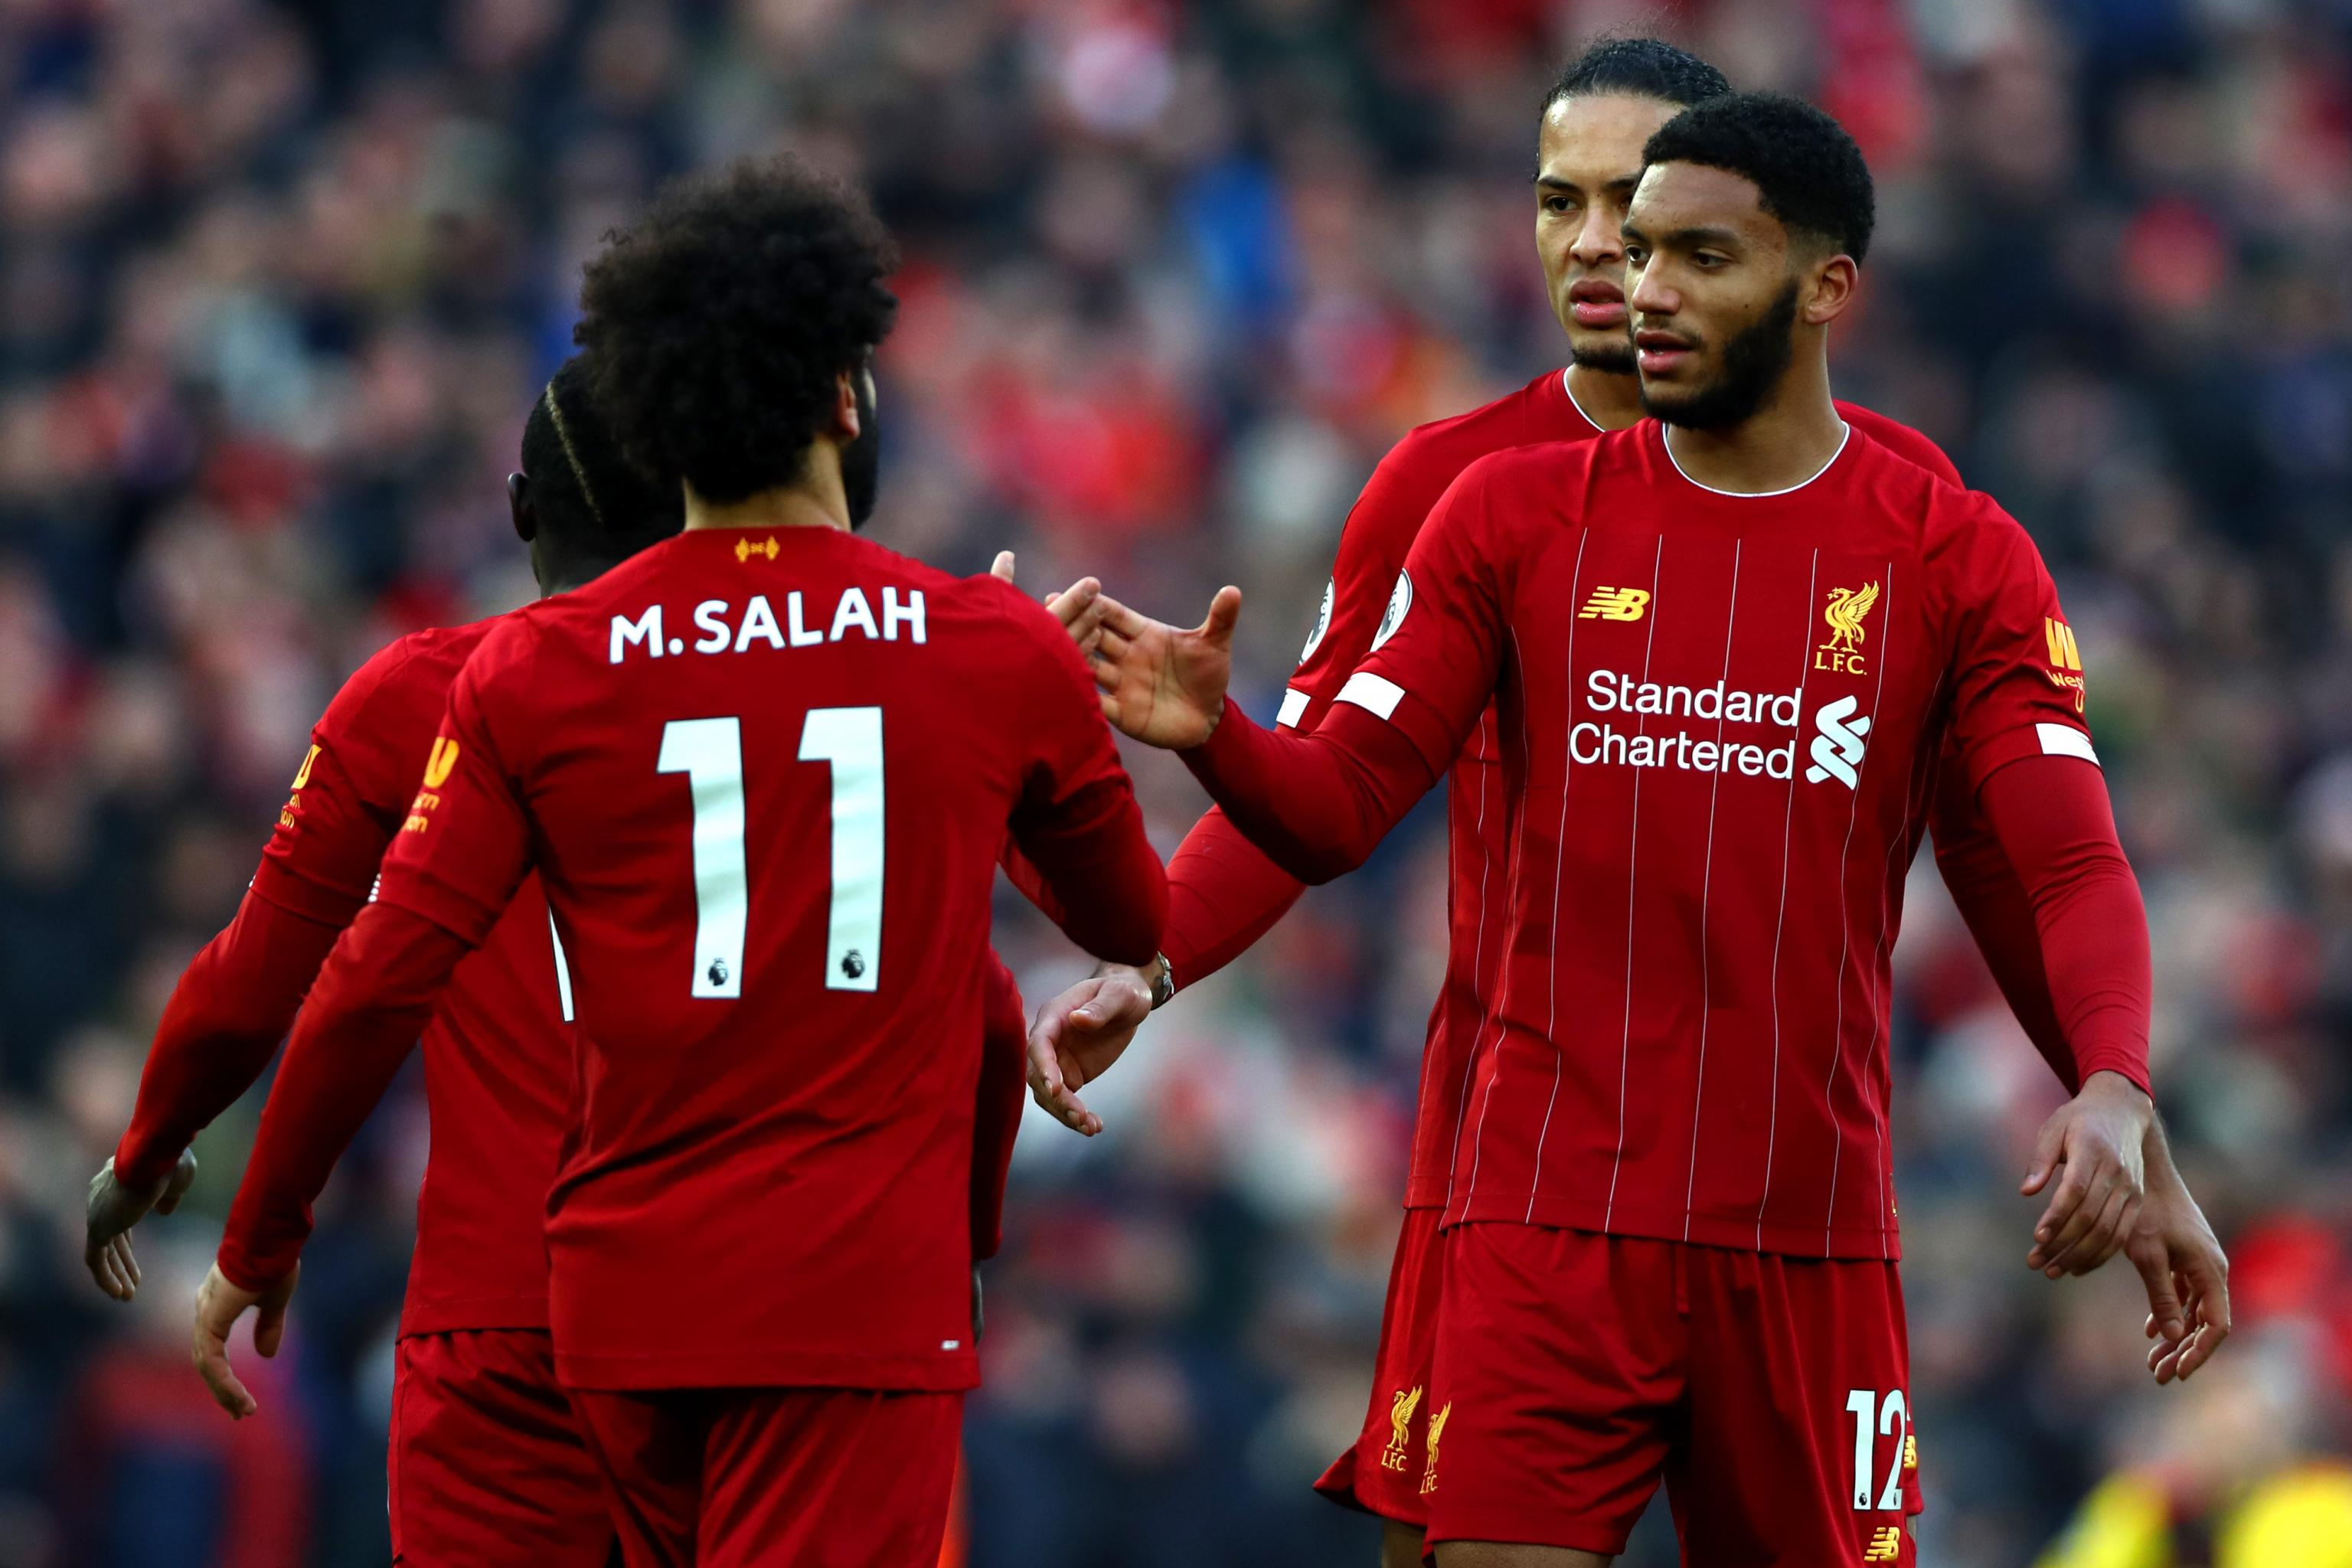 EPL Table: Saturday's Week 17 Results, Scores and 2019 Premier League  Standings   Bleacher Report   Latest News, Videos and Highlights